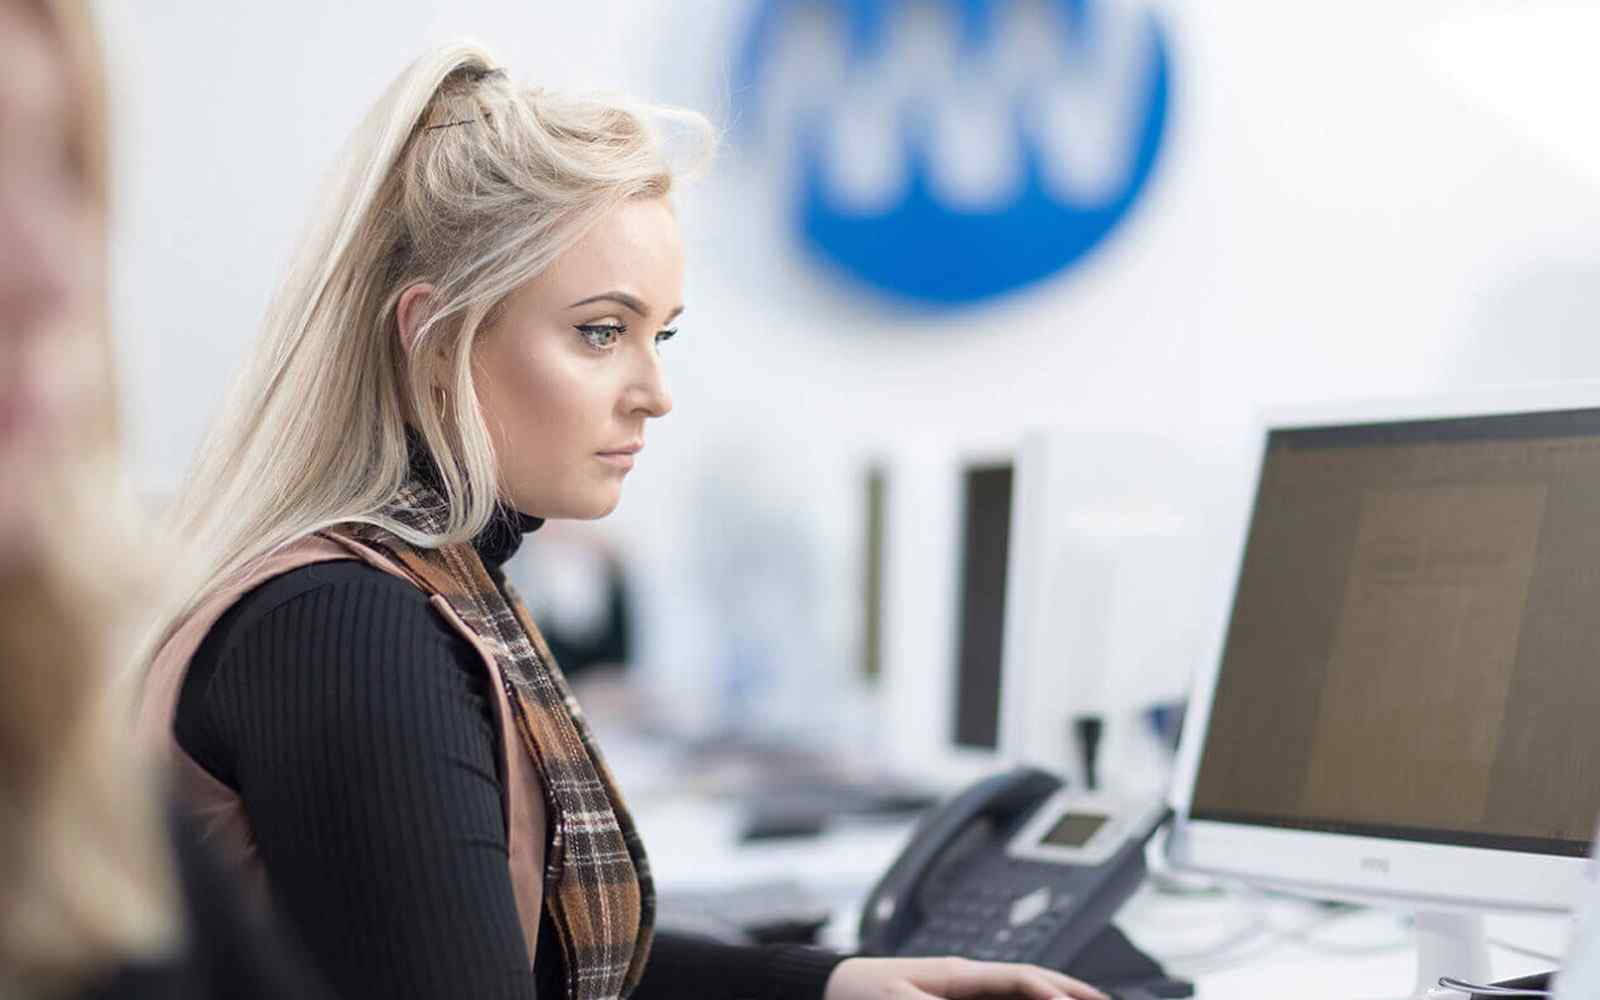 Girl working at a computer in the Media Works offices